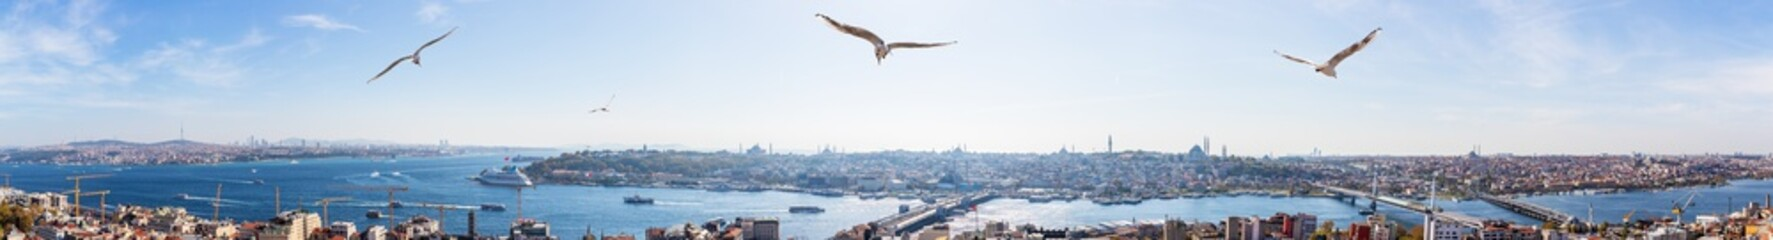 Golden Horn in Istanbul, famous sights in full panorama, Turkey